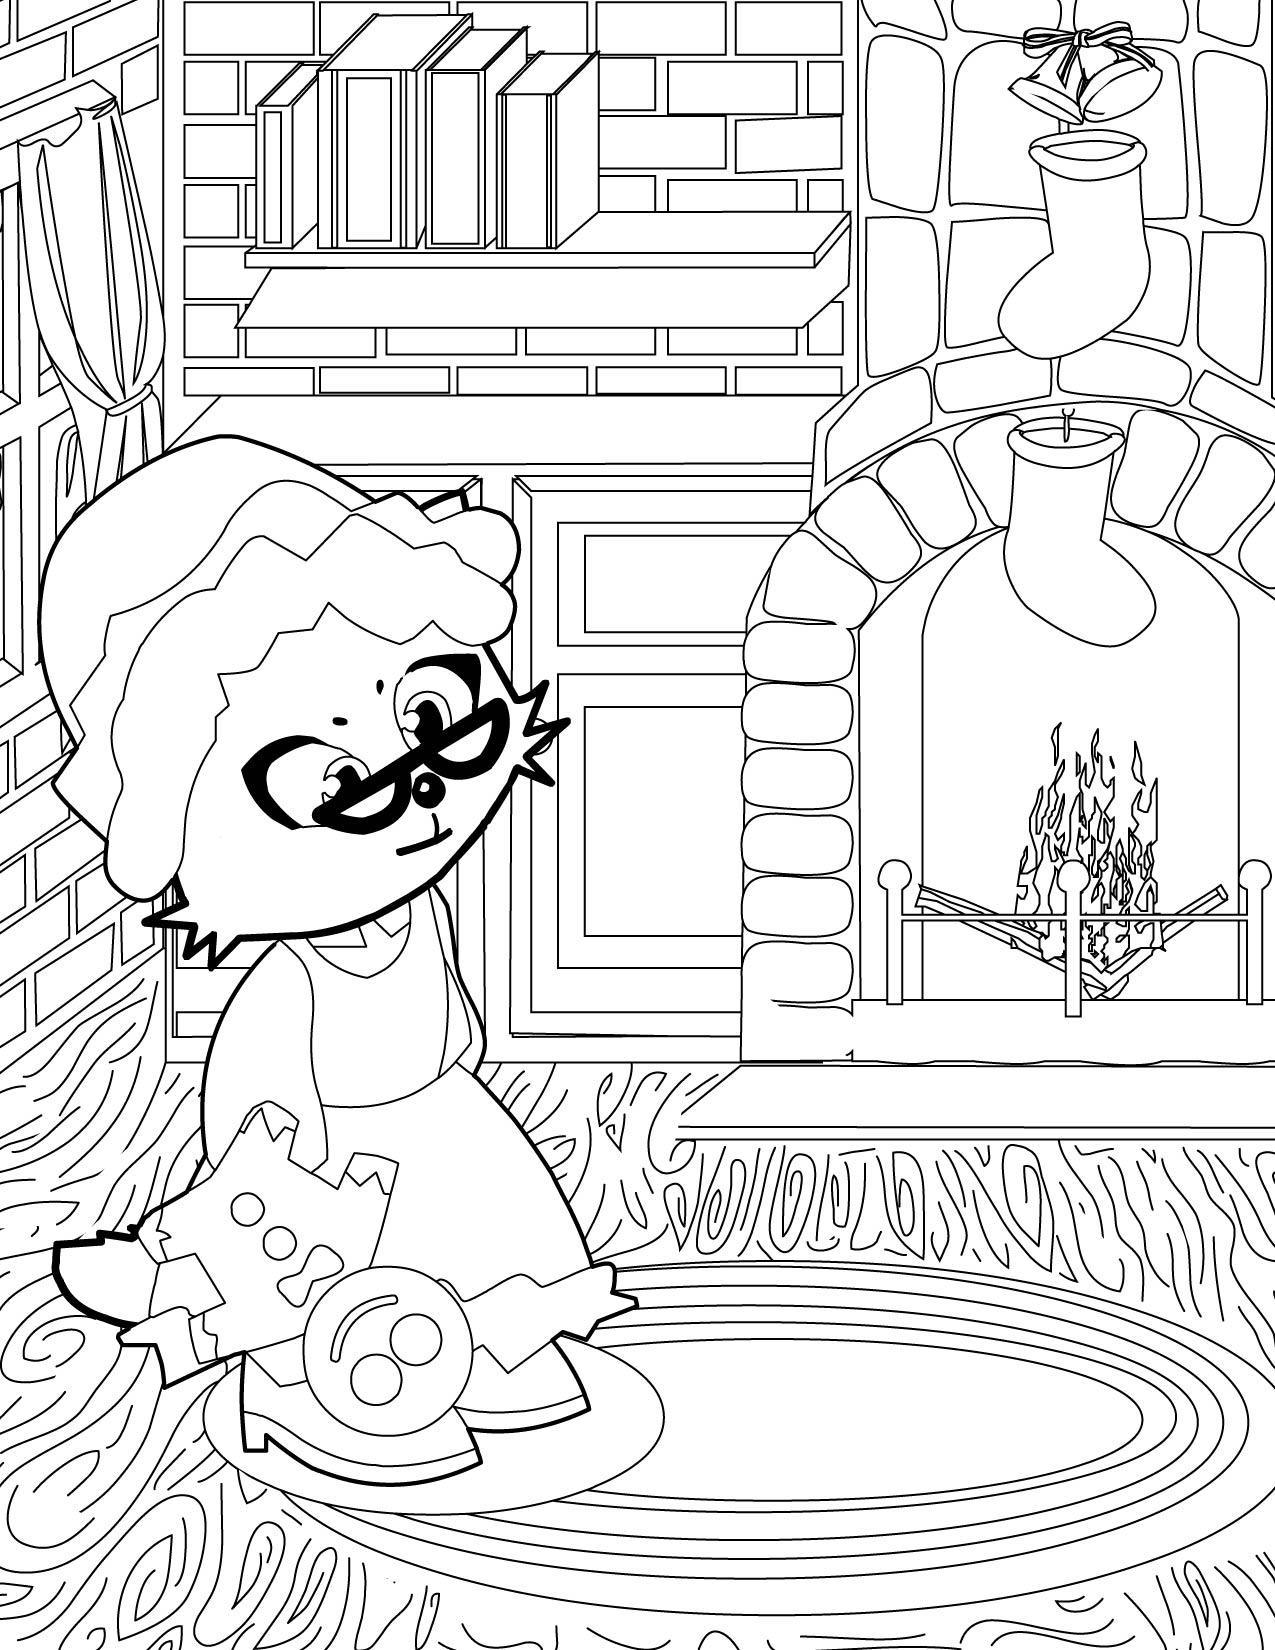 mrs claus - Santa And Mrs Claus Coloring Pages